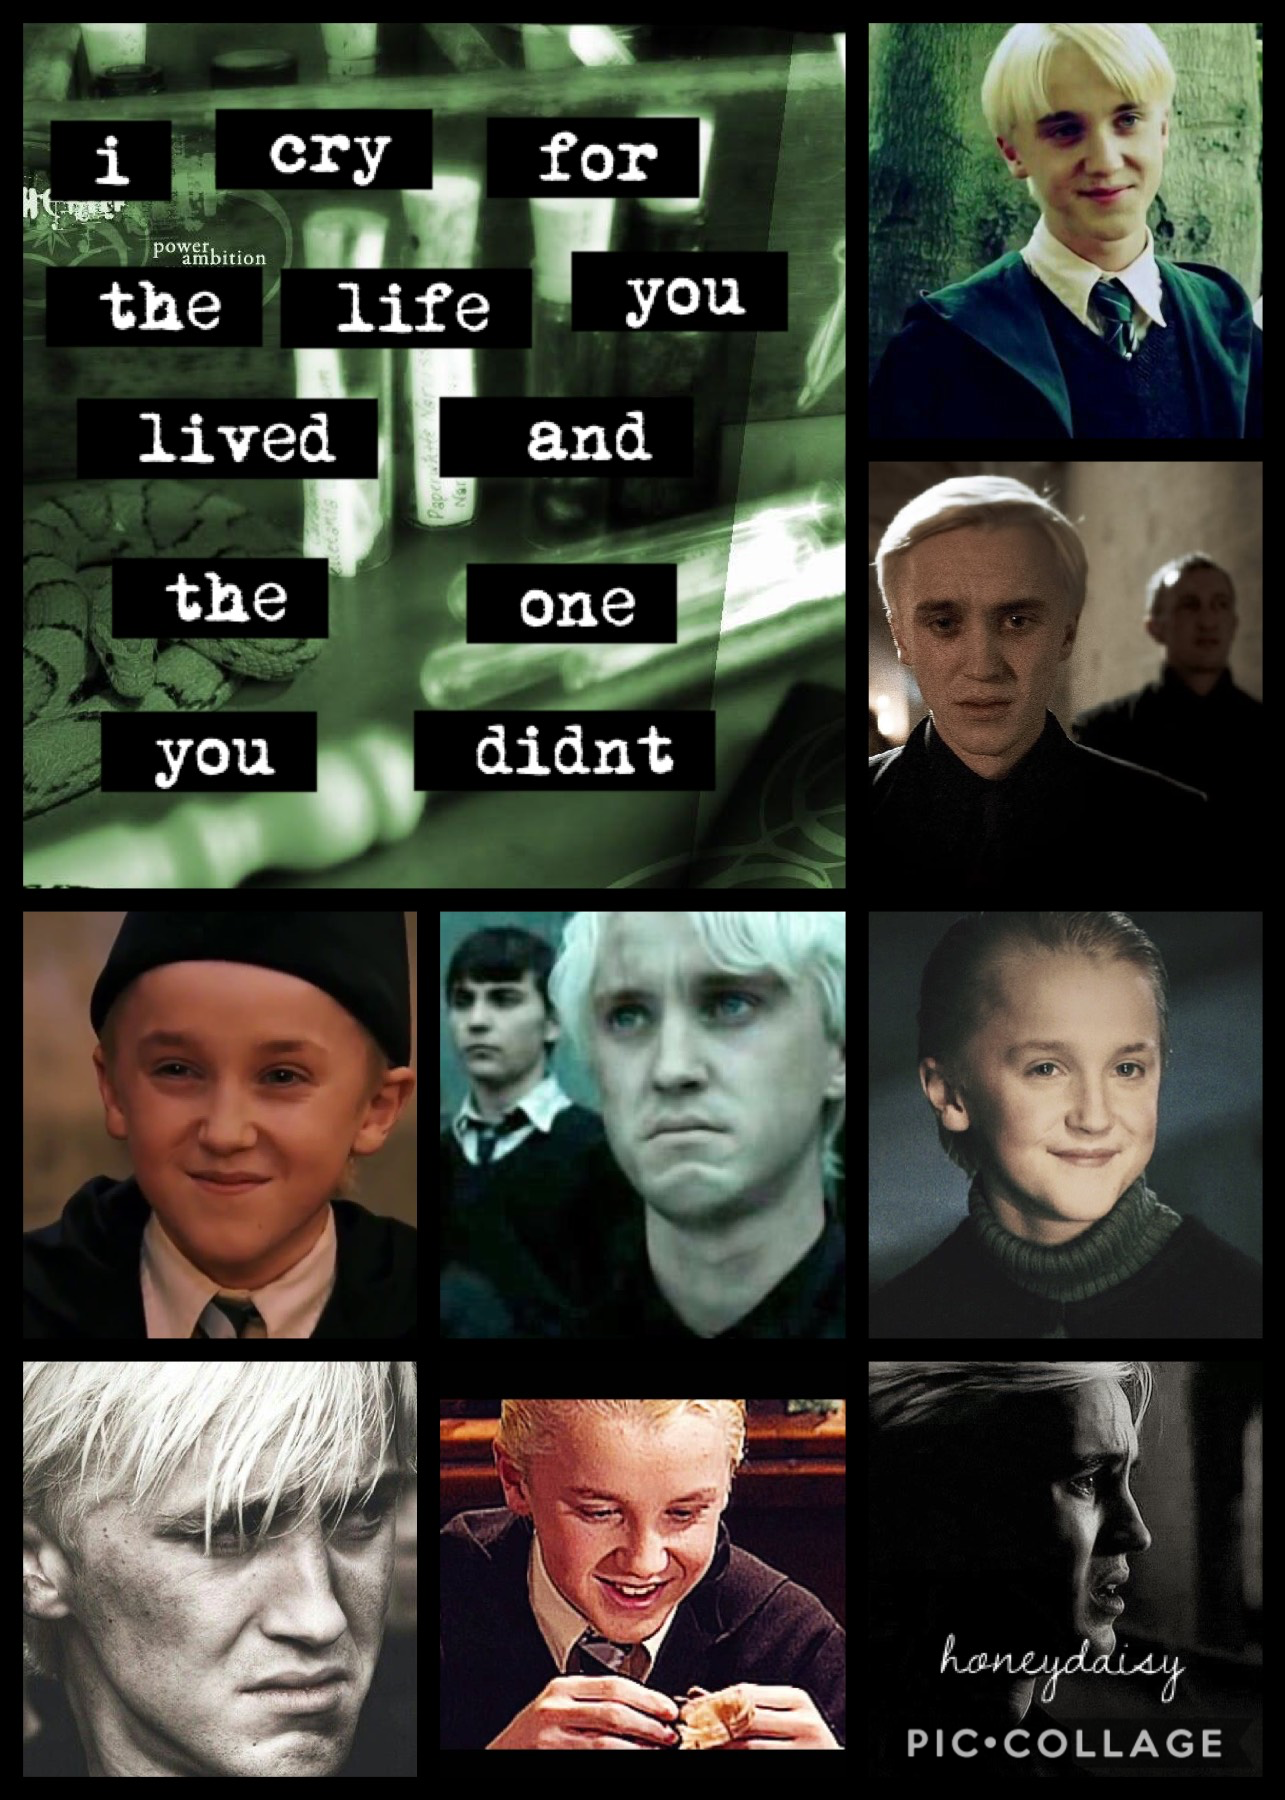 omg draco malfoy is my favorite harry potter character! 💚 who is yours?